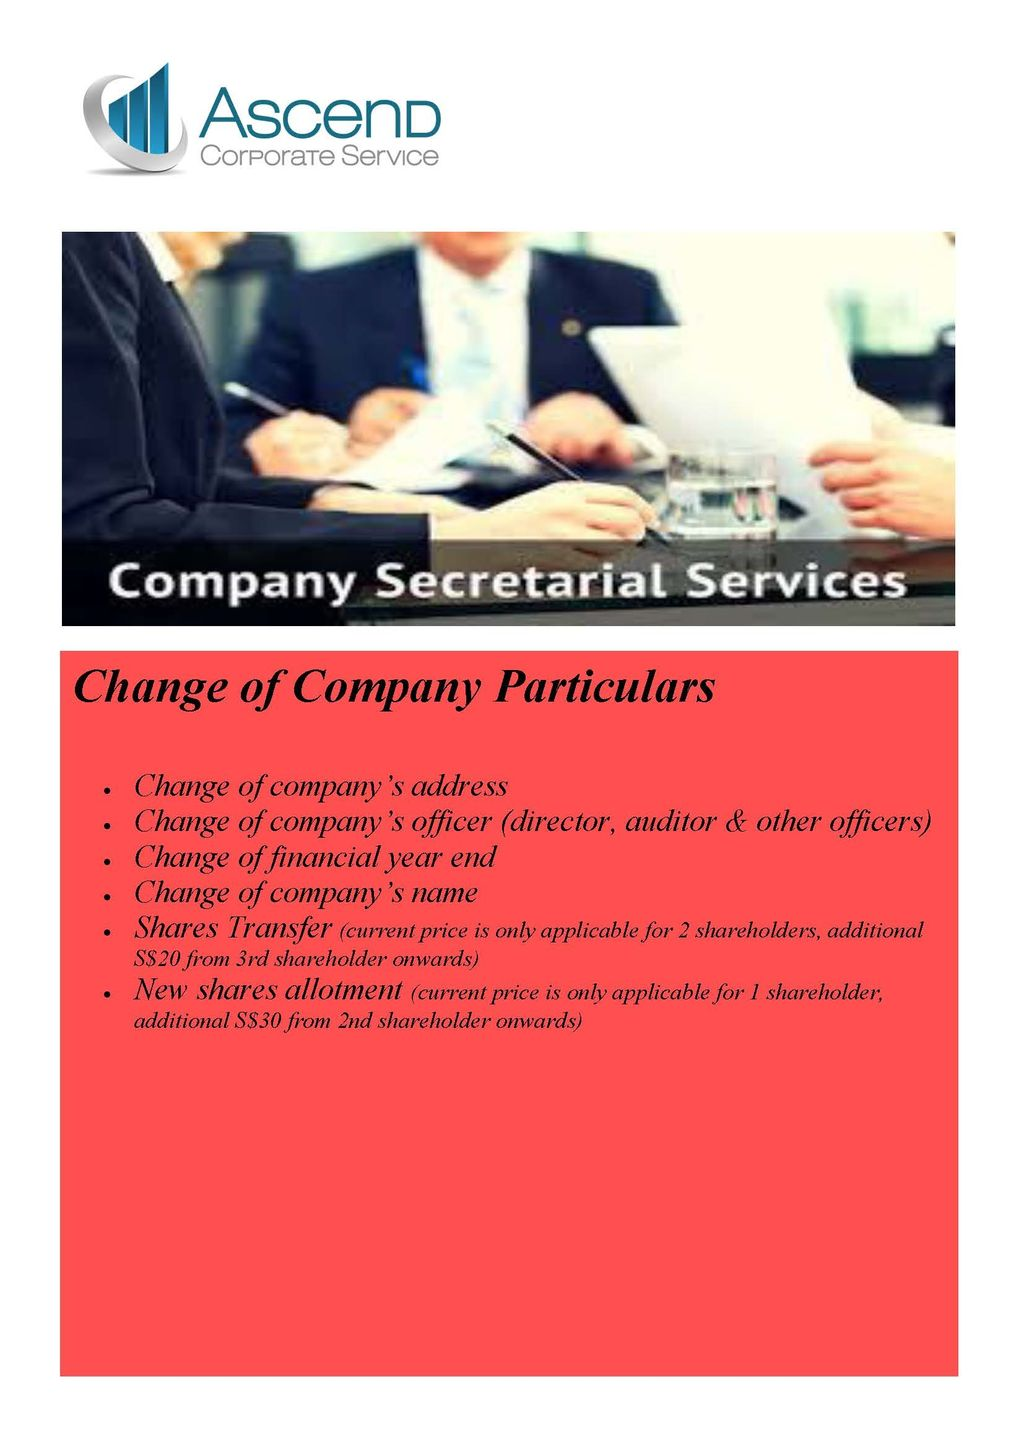 E-Commerce - Change of company particulars.jpg